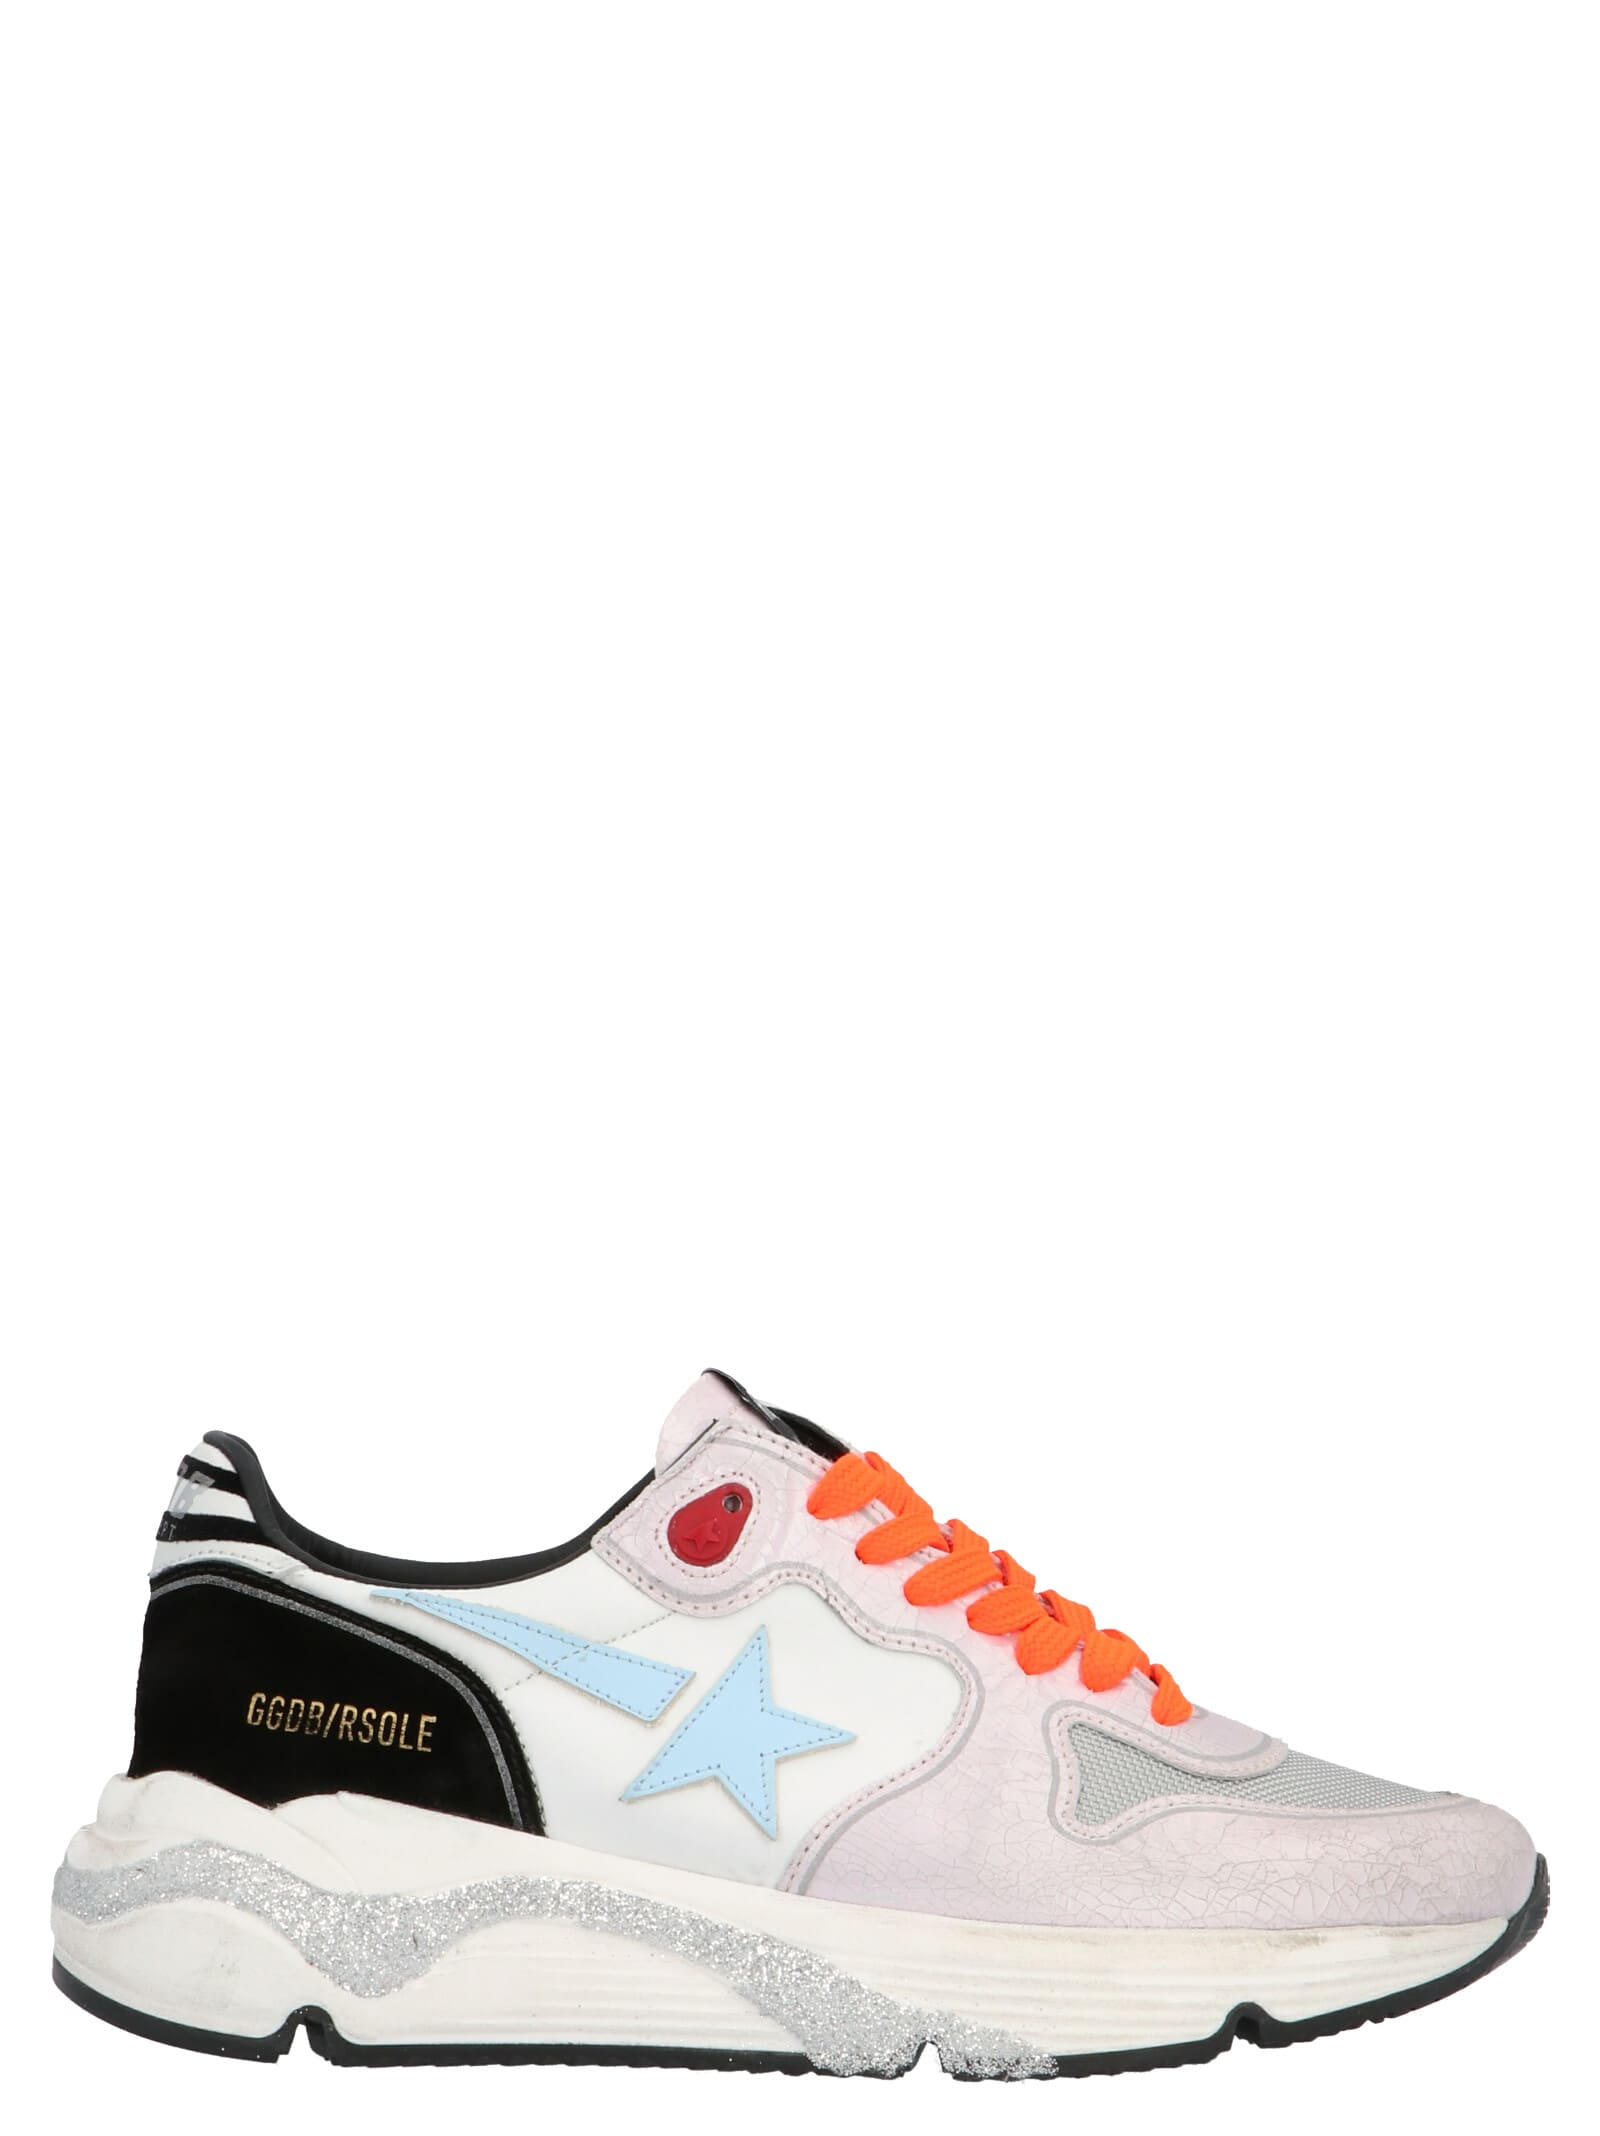 Golden Goose RUNNING SOLE SHOES